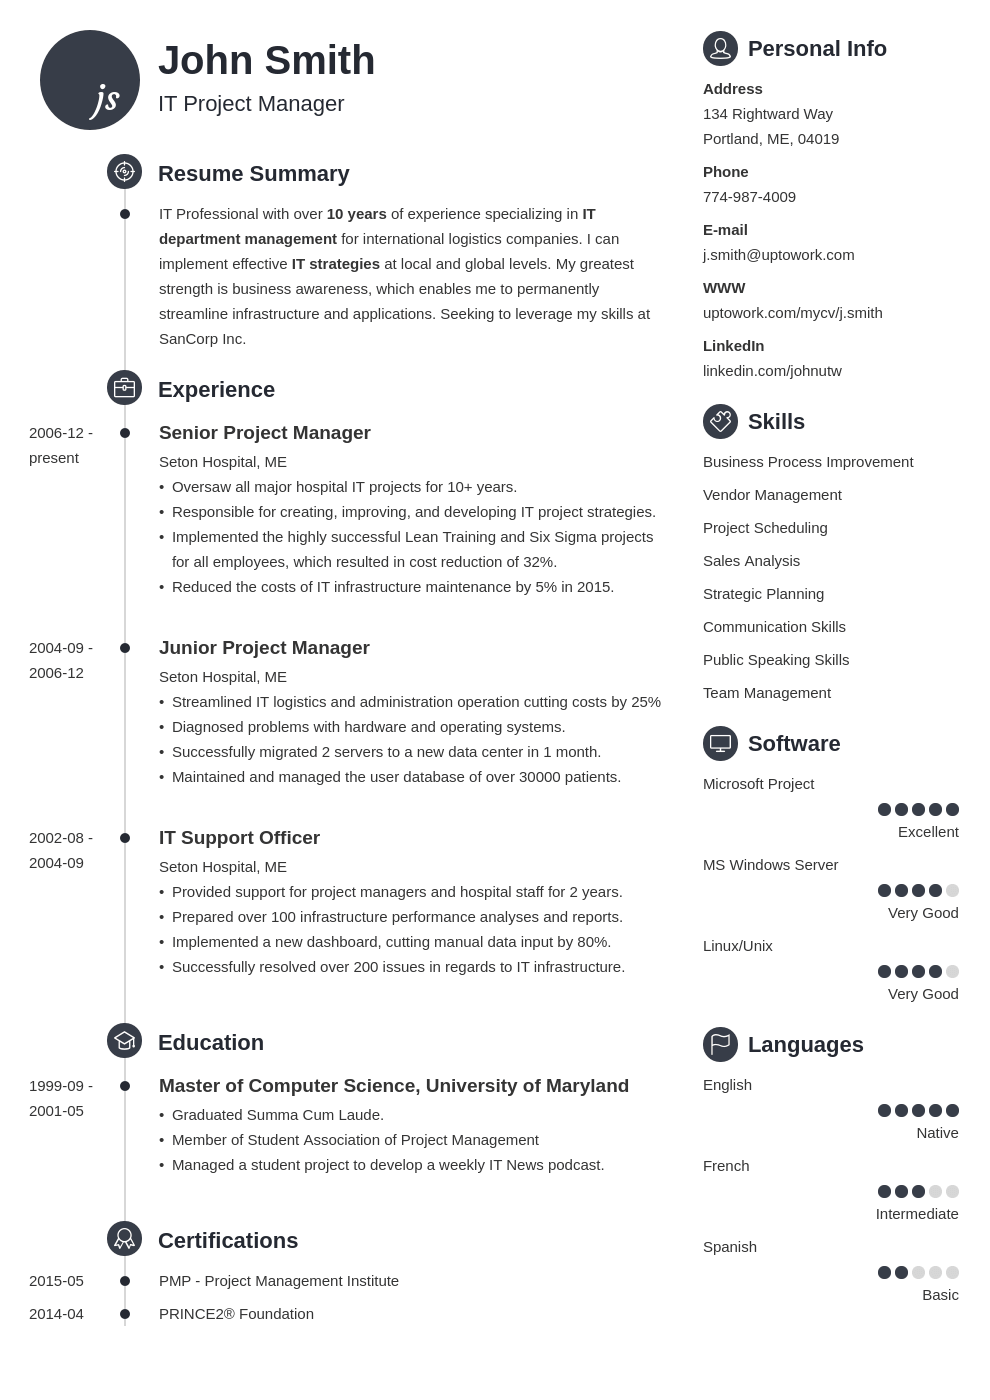 us recommended professional resume template primo - Work Resume Template